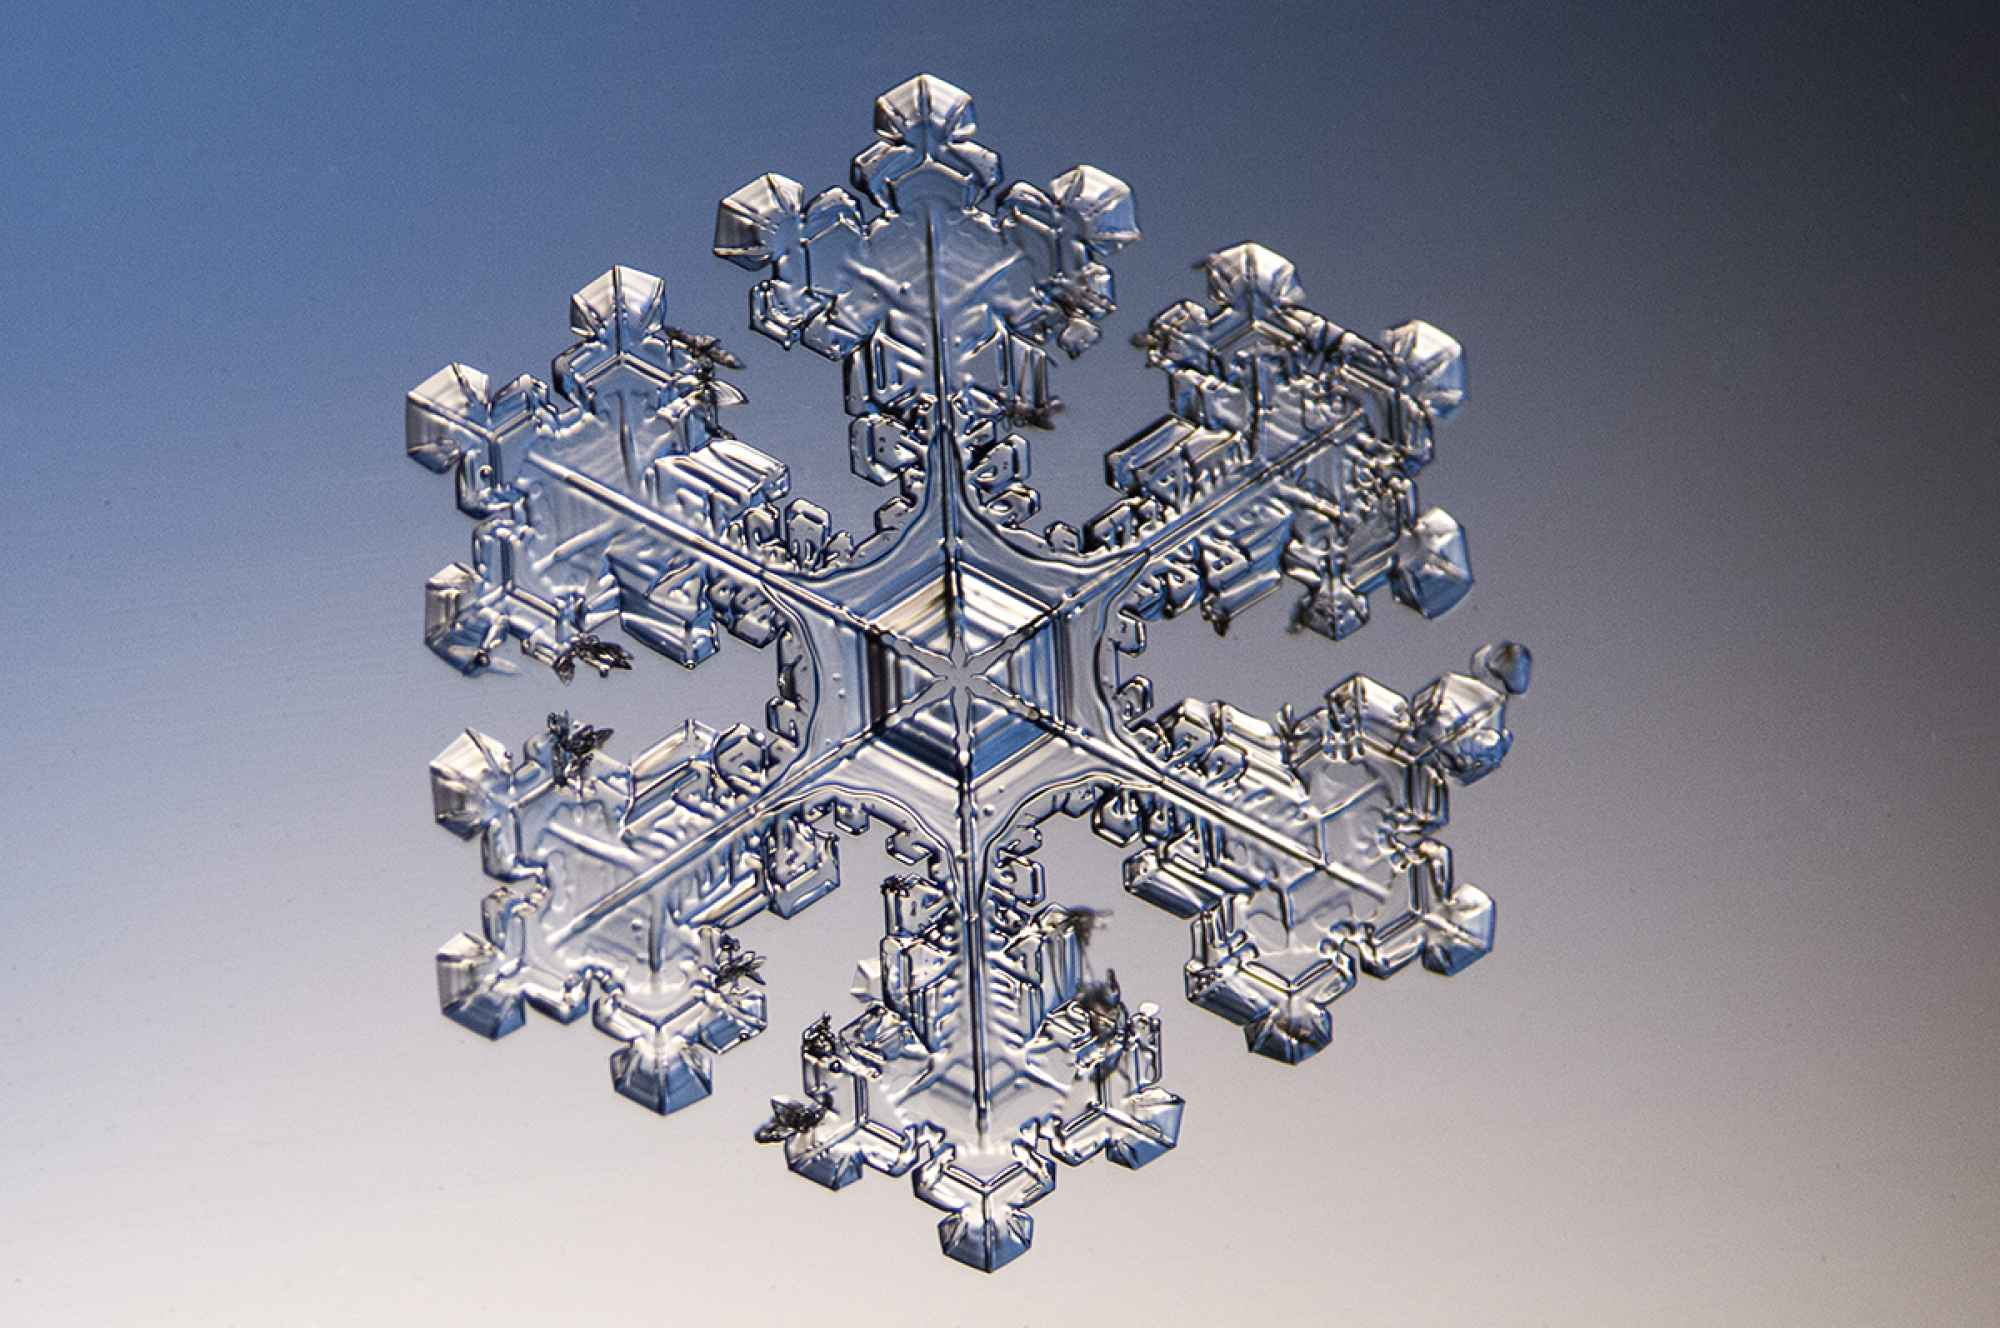 32 QHD(1440p) and HD(1080p) snowflake wallpapers in time for the holidays